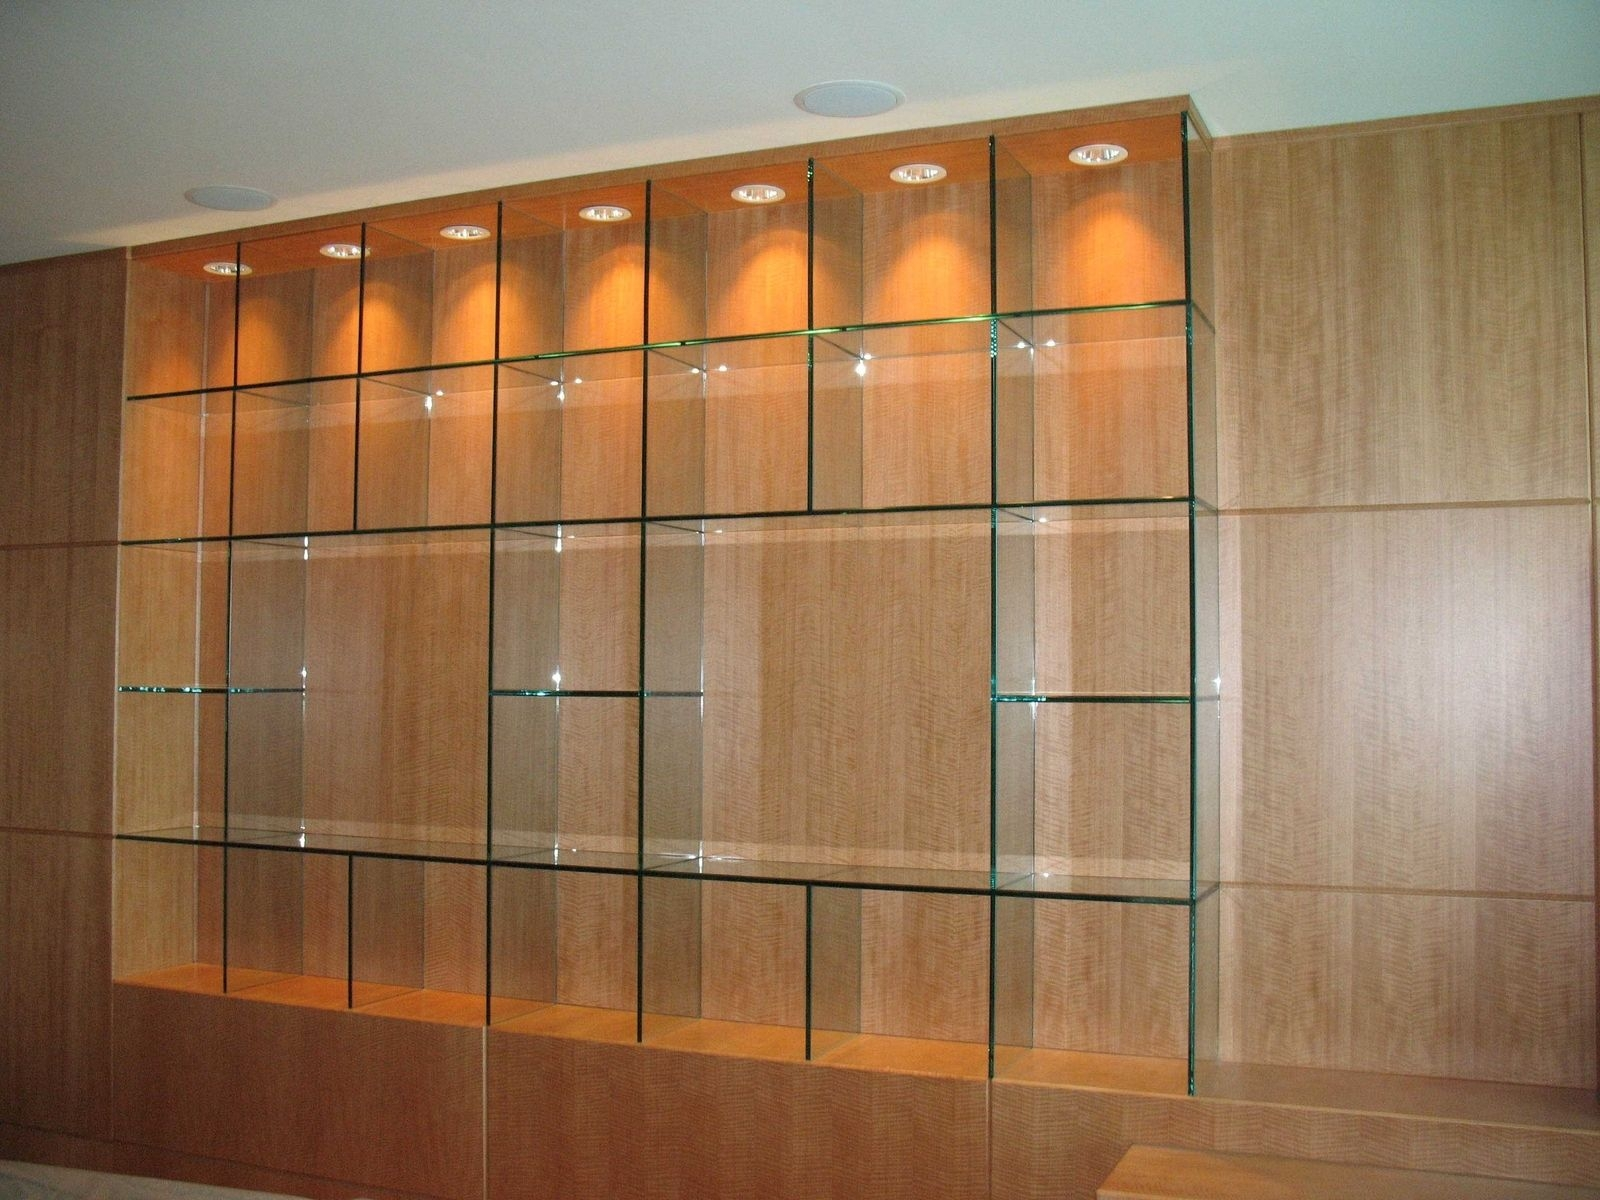 Handmade Glass Shelves Knock On Glass Custommade Within Glass Shelving (View 14 of 15)